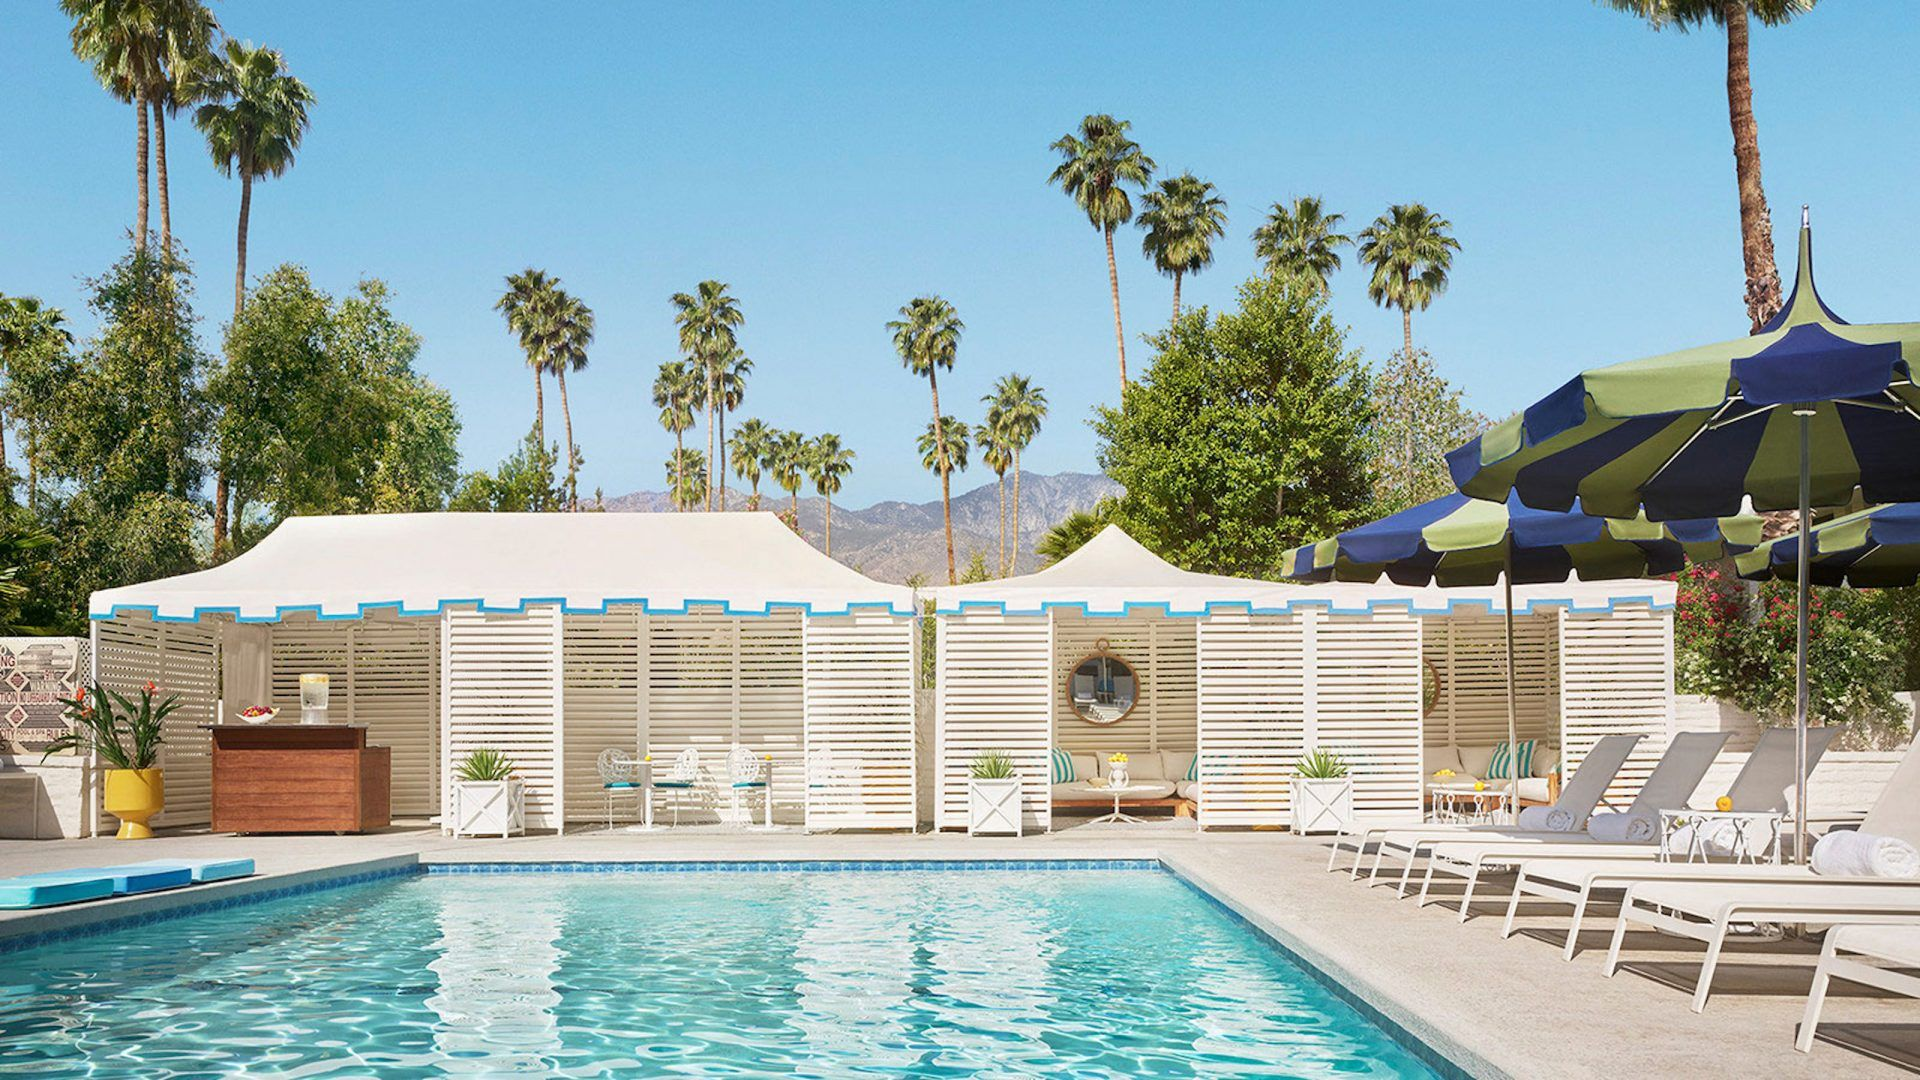 48 Hours In Palm Springs, California